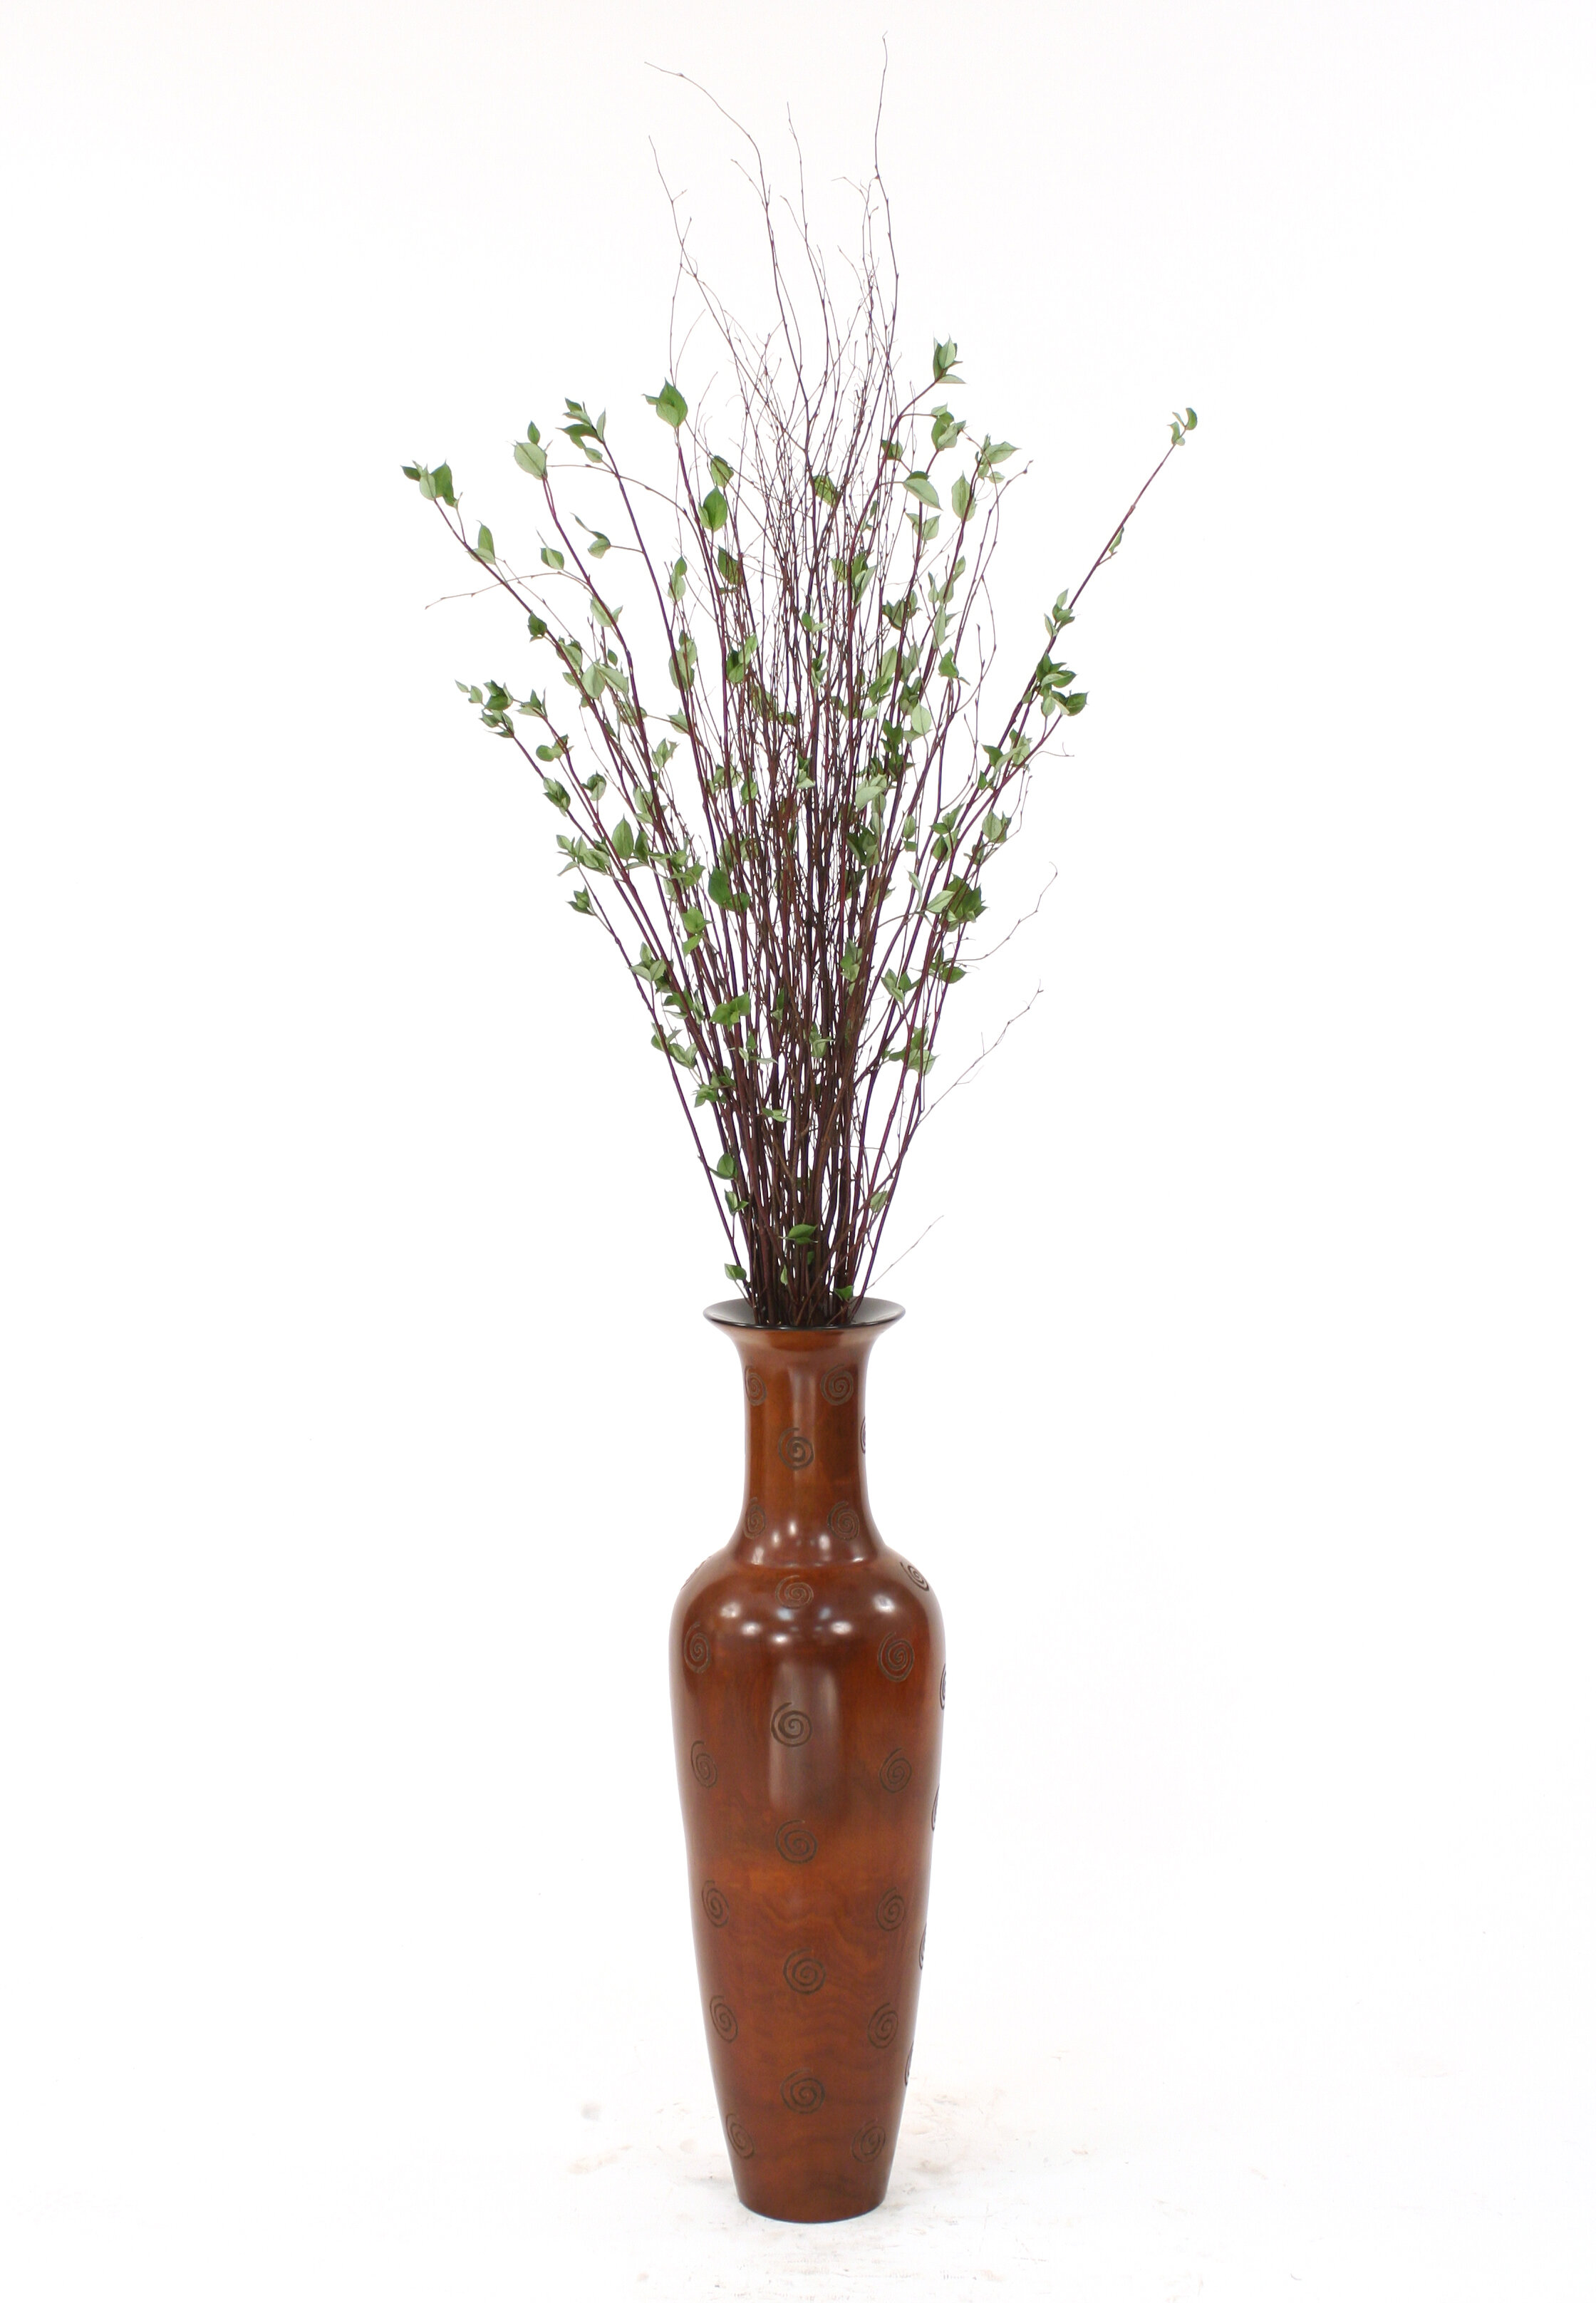 Distinctive Designs Birch Branches Drop In Floor Plant Decorative Vase Wayfair